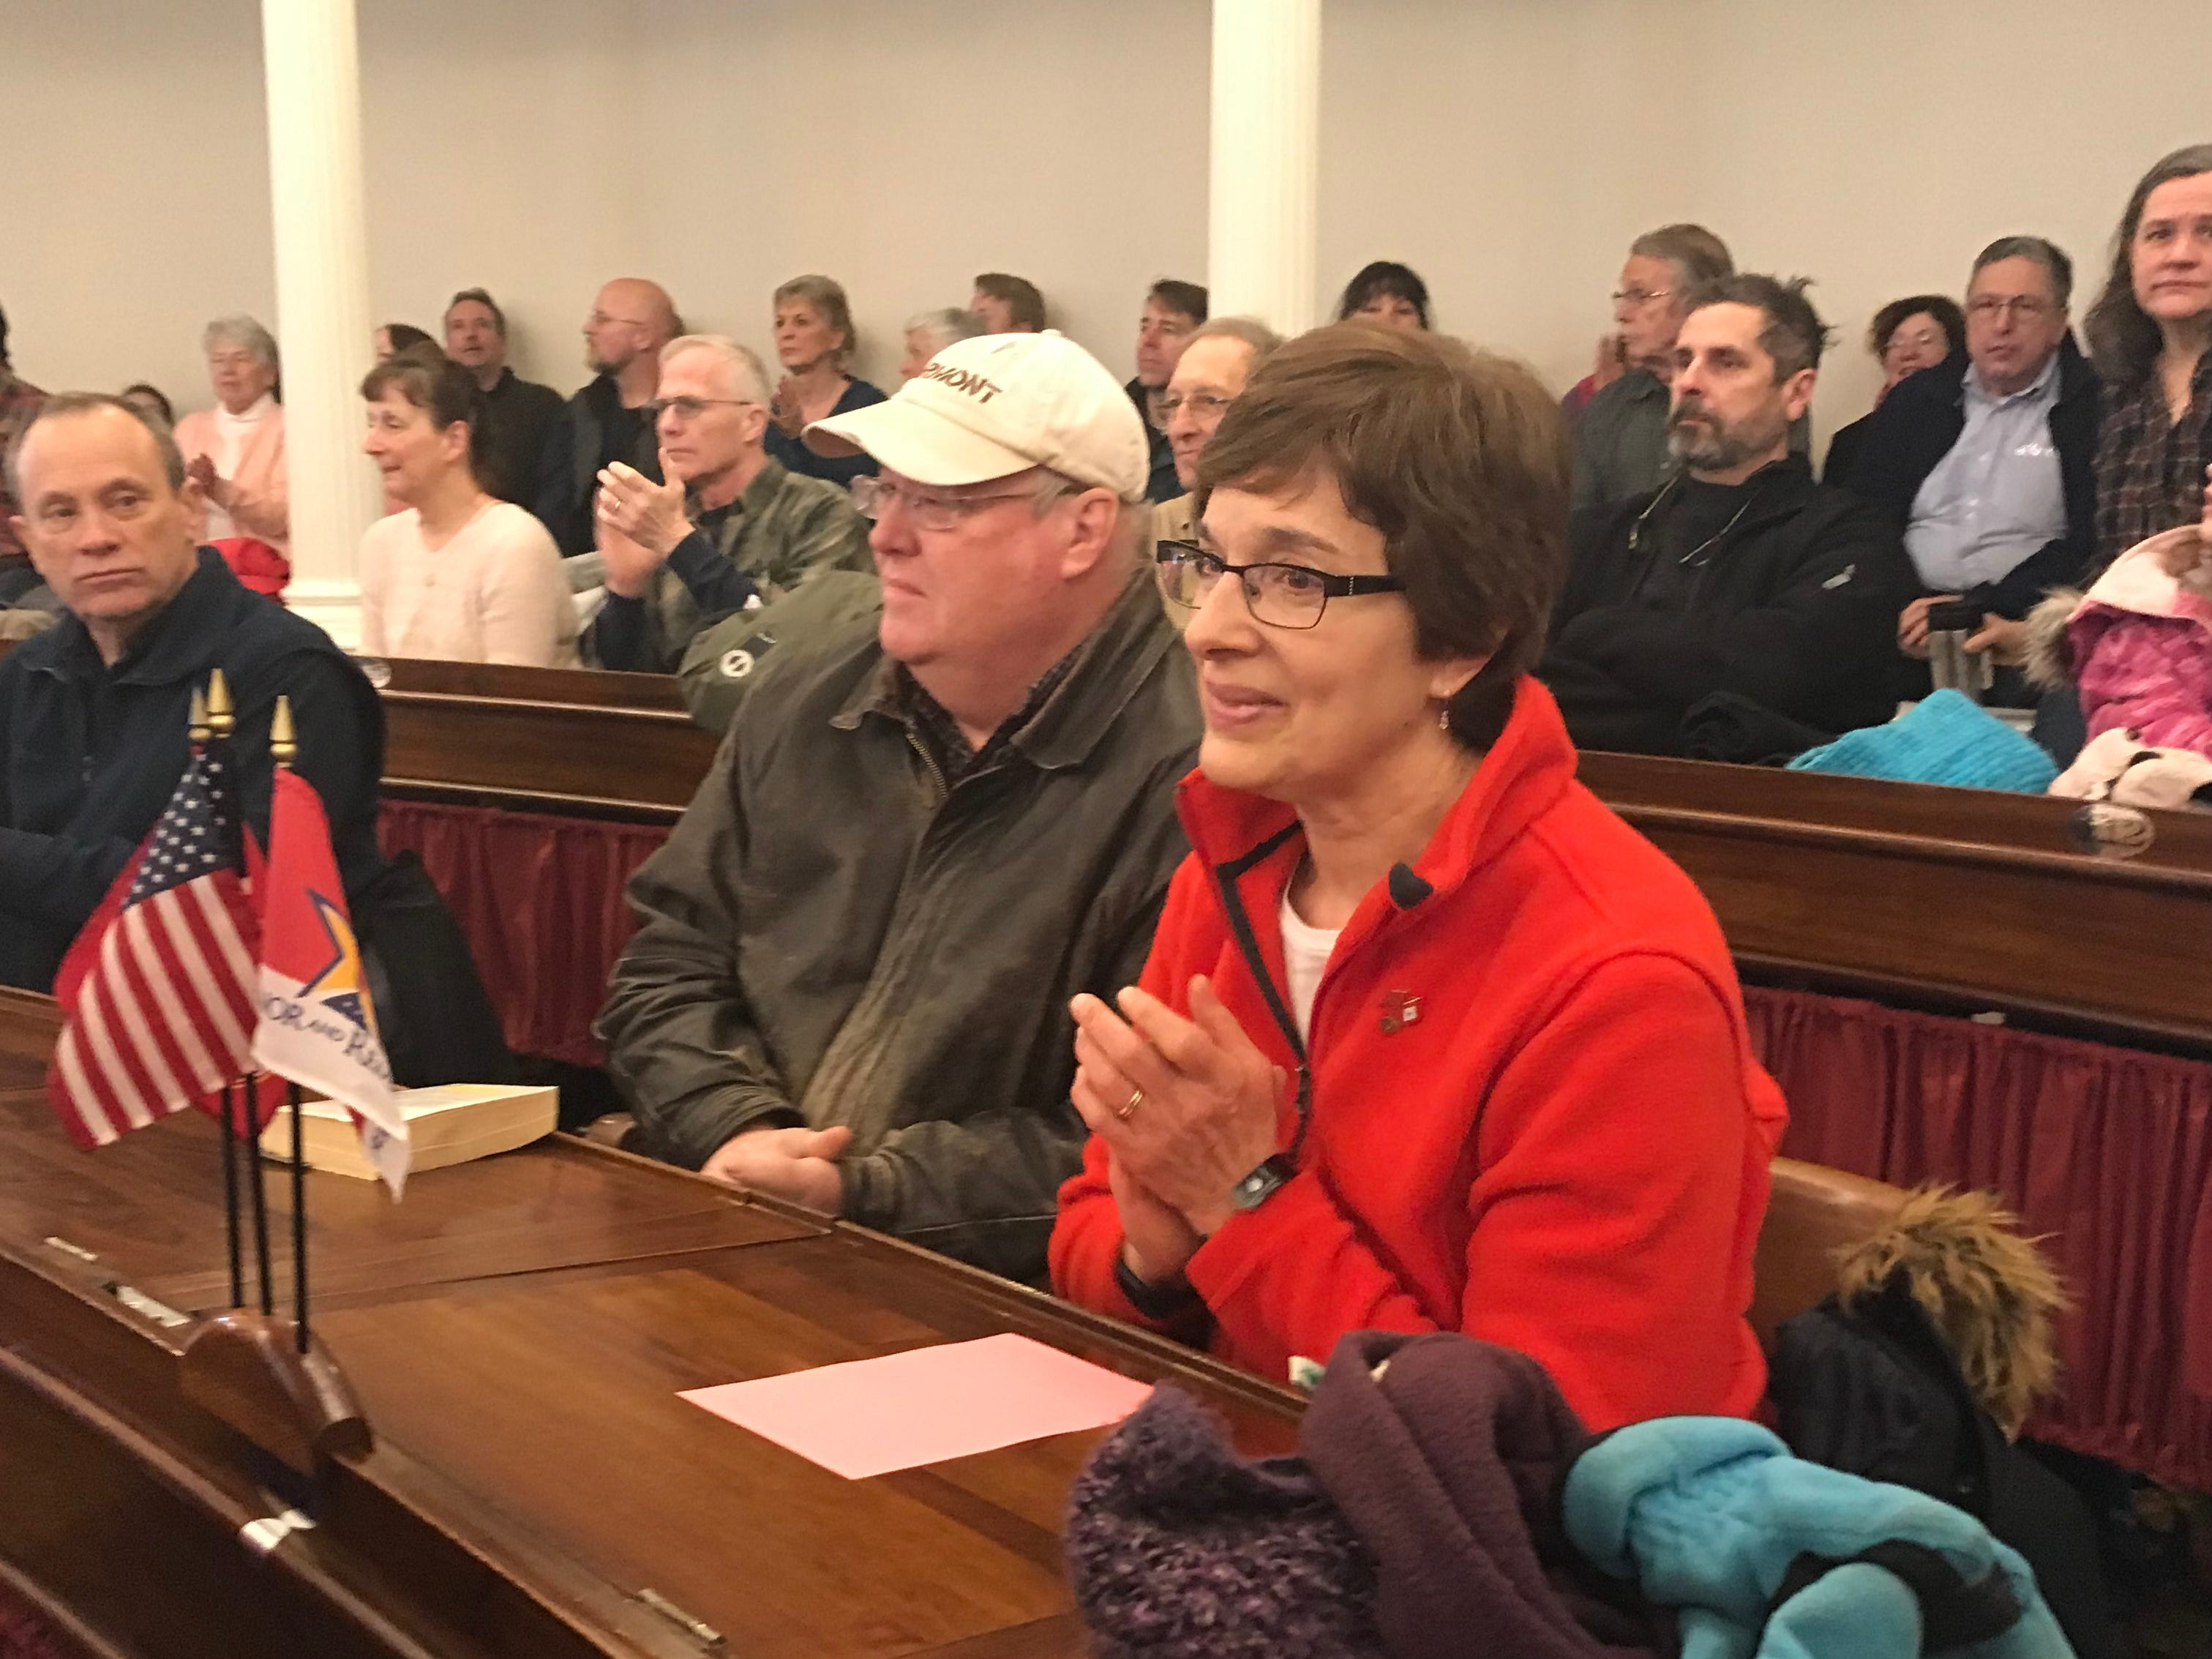 Rep. Vicki Strong, R- Orleans-Caledonia, was introduced as a supporter of Right to Life Vermont and also a gold star mom, on Jan. 26, 2019 at the Vermont State House.